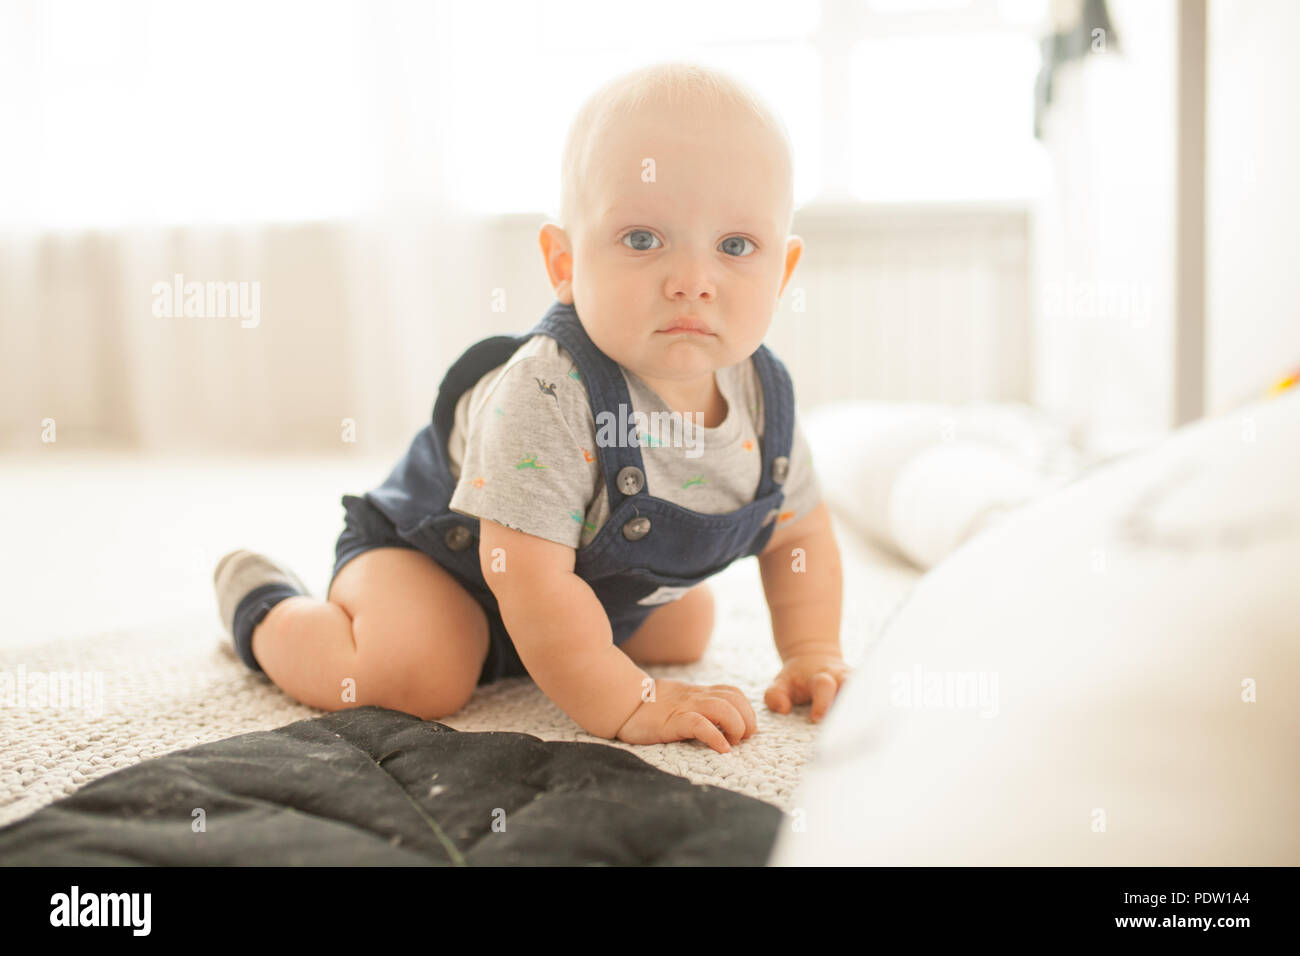 Sad toddler in rompers and t-shirt crawls on carpet in room against window. - Stock Image